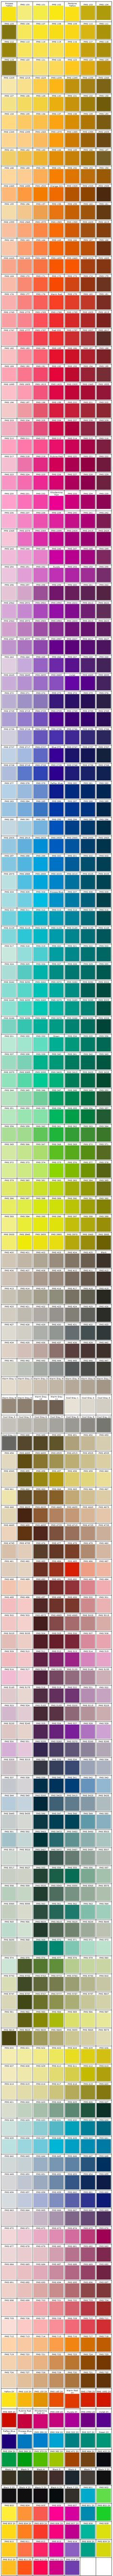 Pantone Matching System: Printing Services  Sometimes we just need  to know  just what color we need this is wonderful